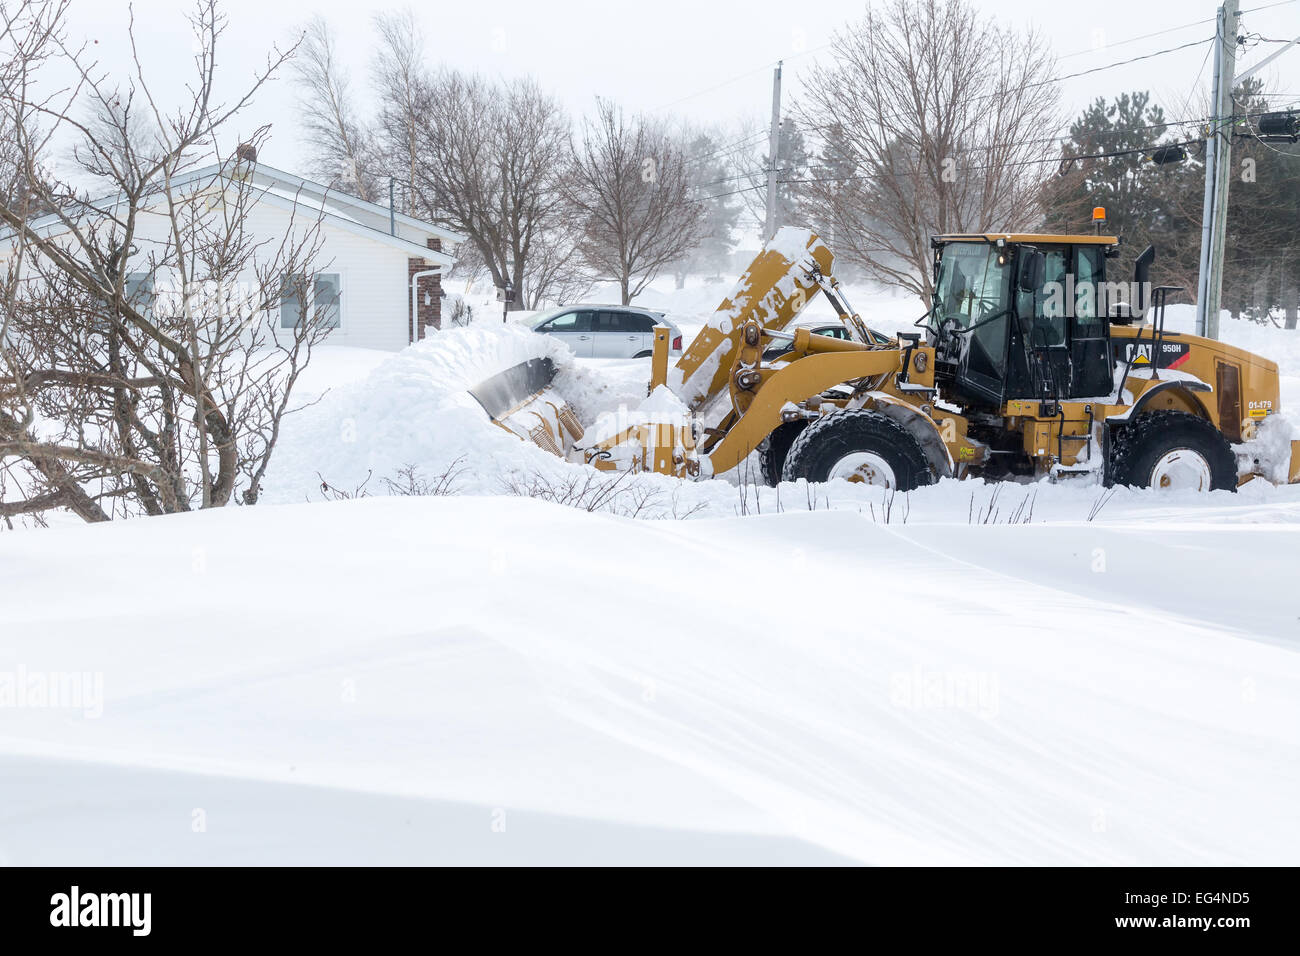 Large snowplow pushes through a heavy snowfall on a suburban street after a snow storm. - Stock Image